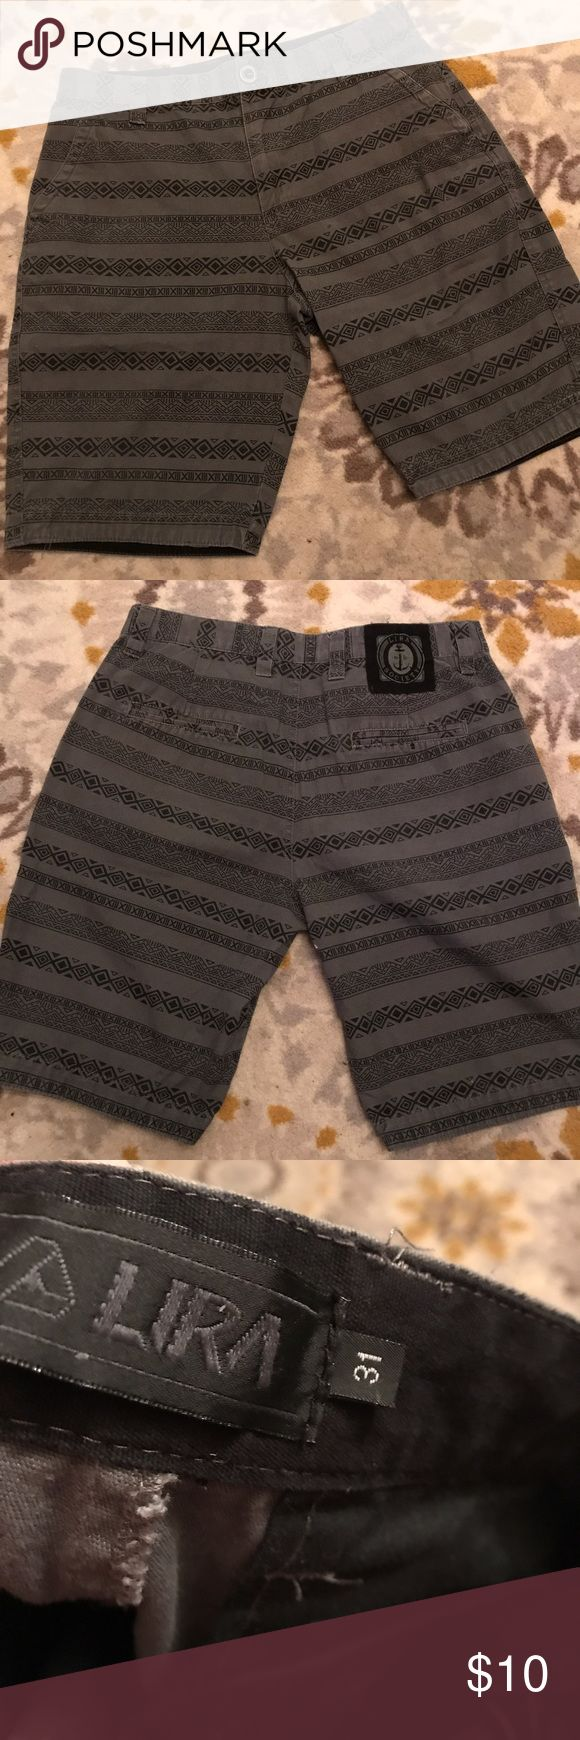 Nice Lira Shorts Great condition super cute guy shorts Lira Shorts Flat Front